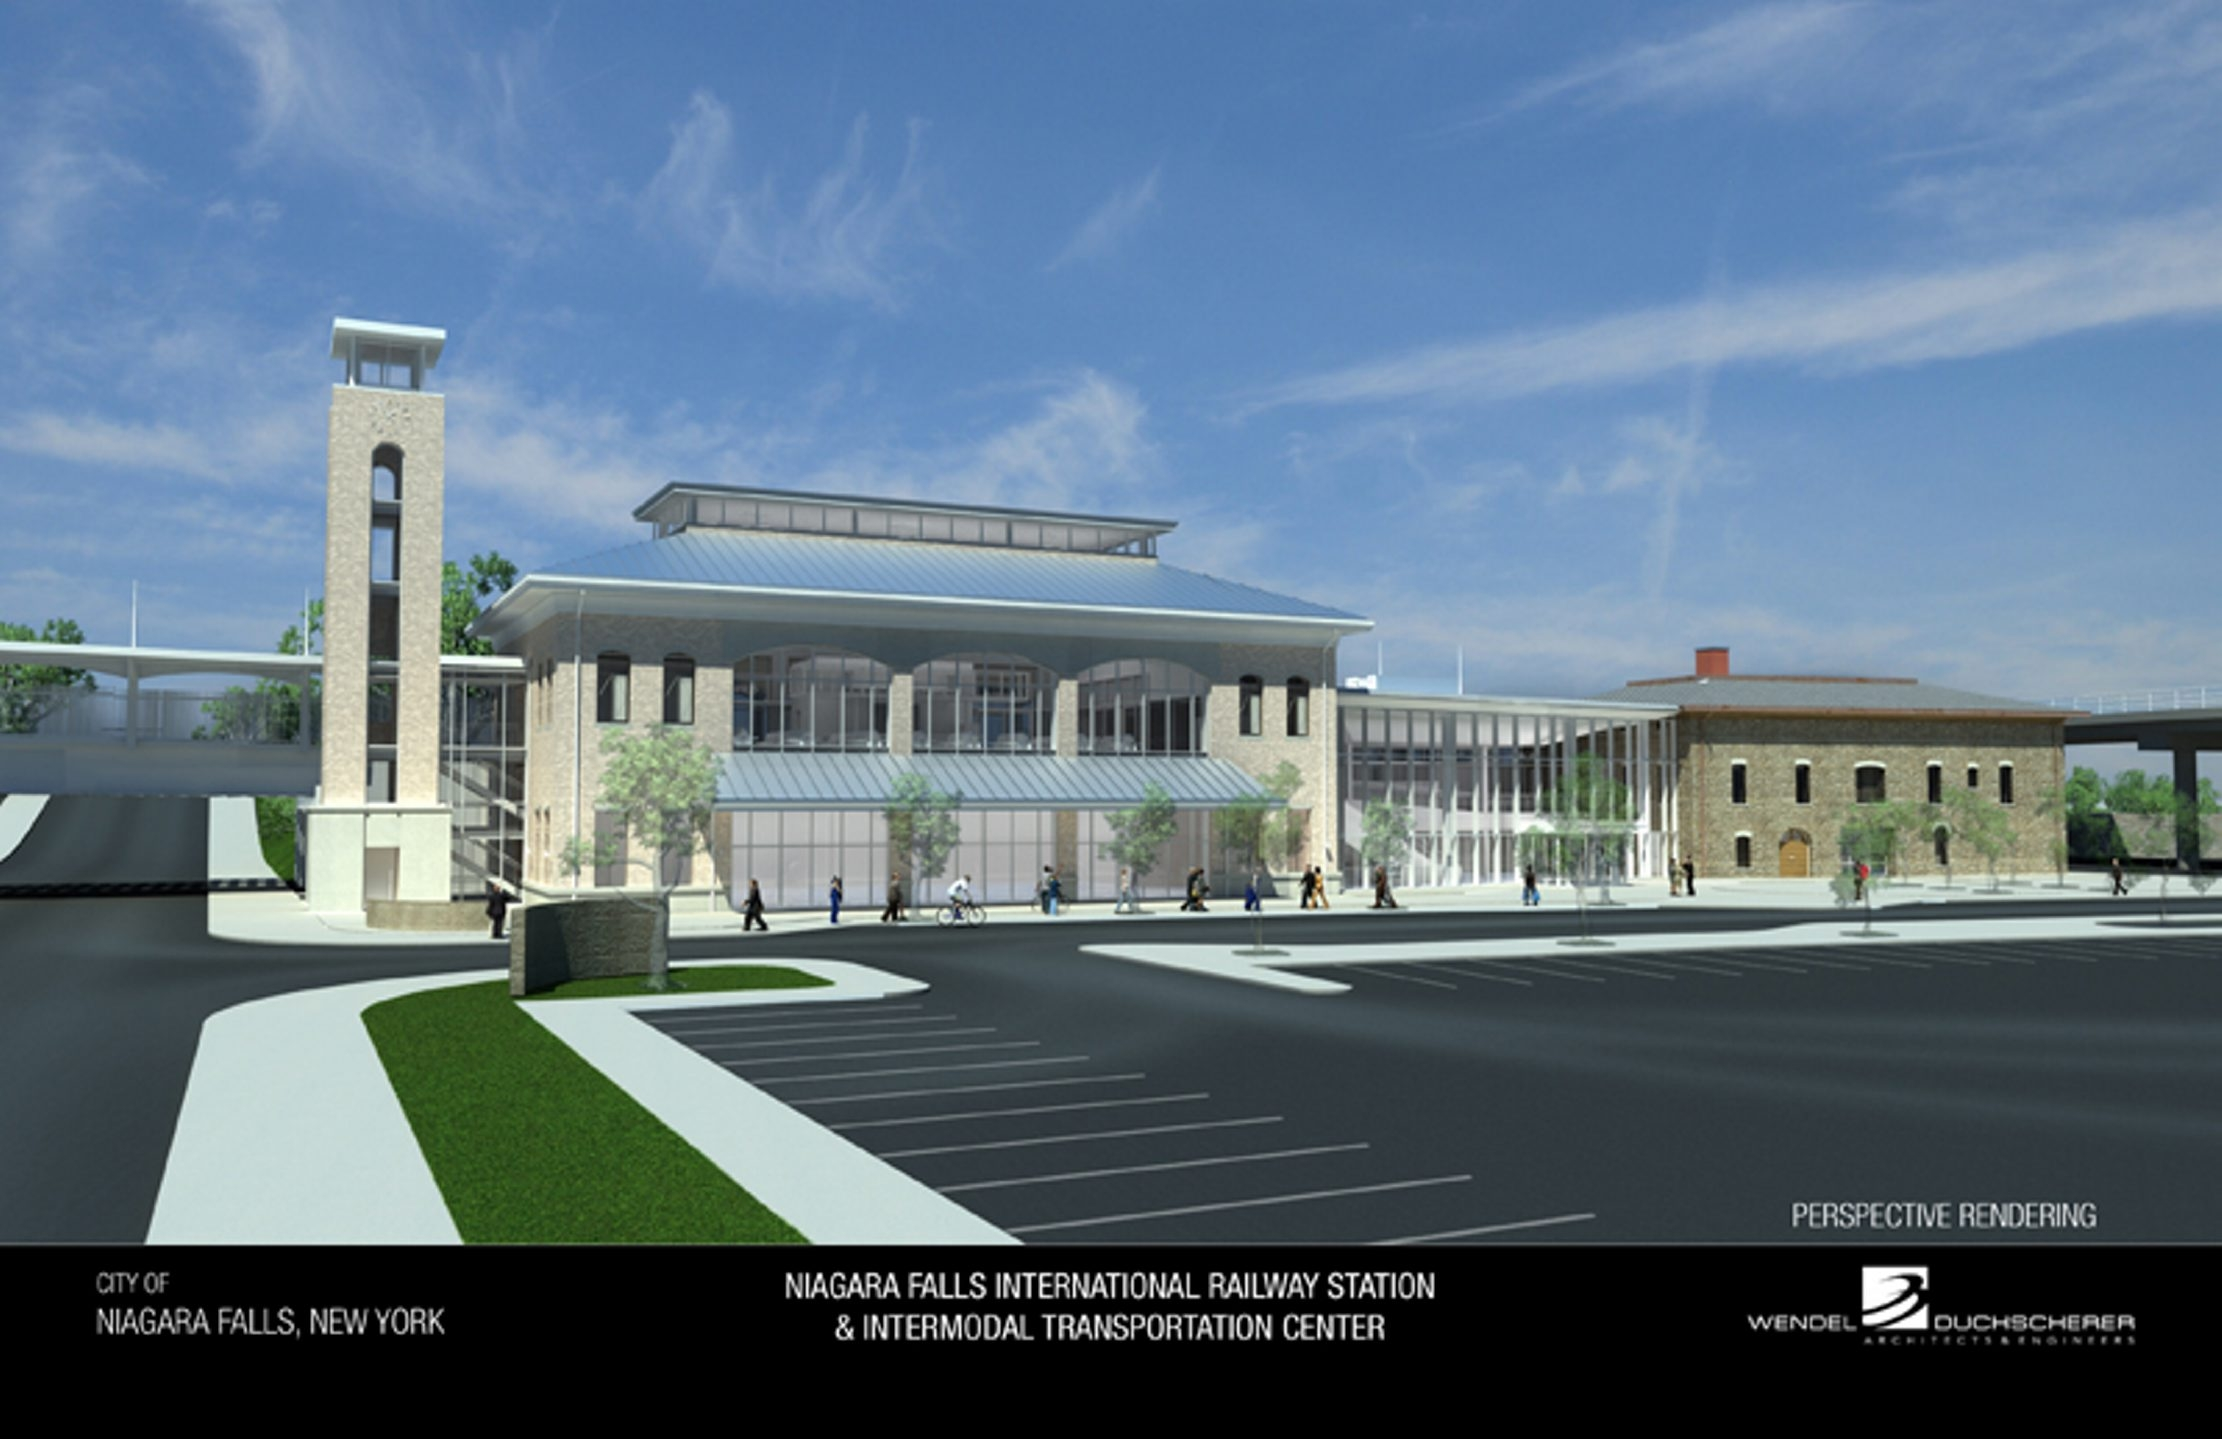 This is a rendering of the planned Niagara Falls Intermodal Transportation Center.